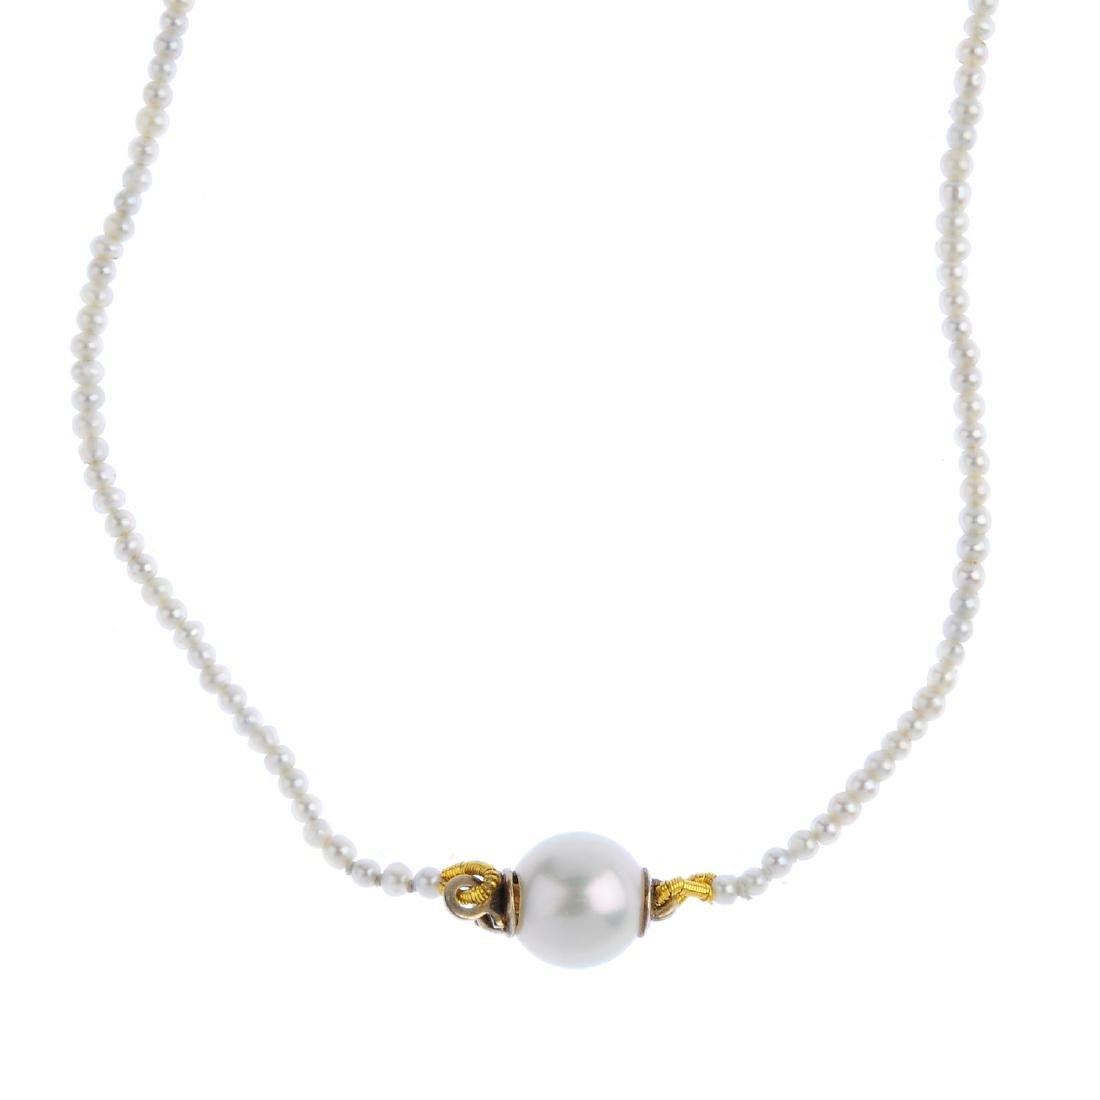 A seed pearl single-strand necklace. Comprising